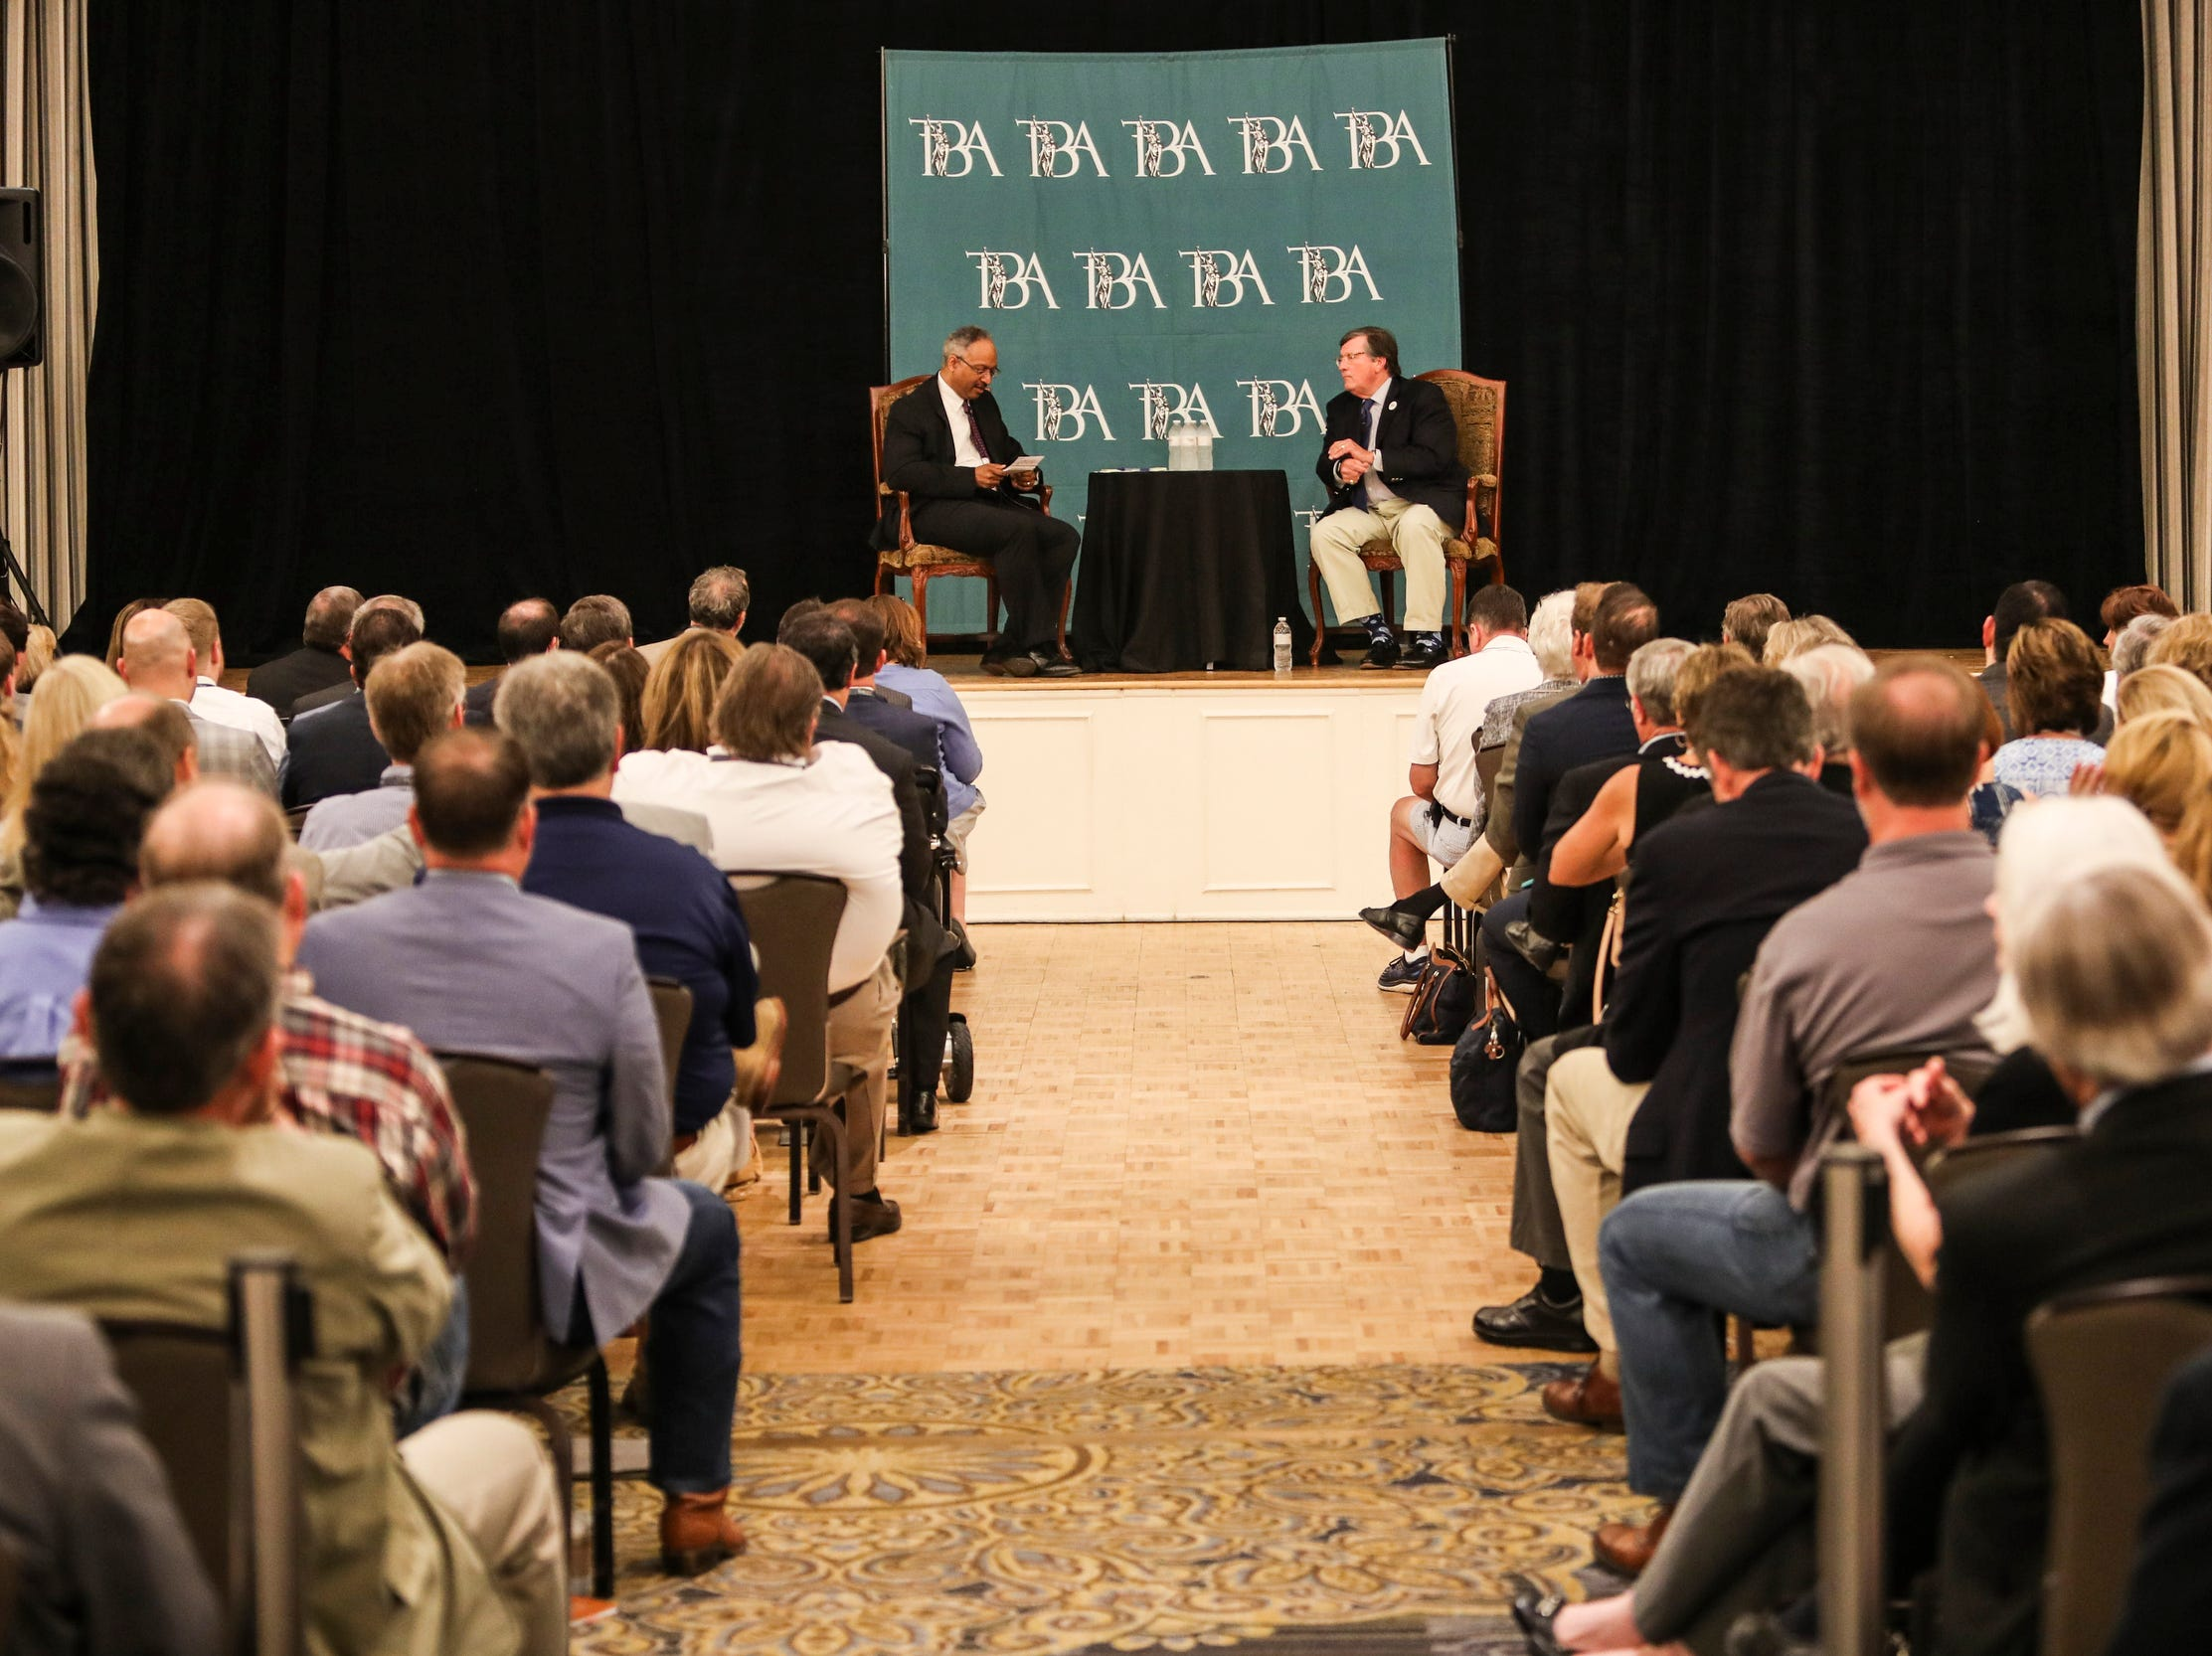 Mark Russell, executive editor of The Commercial Appeal, left, talks with gubernatorial candidate and House Minority Leader Craig Fitzhugh during the forum that included four of the six major gubernatorial candidates June 14, 2018. Russell served as moderator of the forum at The Peabody Hotel that was sponsored by The Commercial Appeal and Tennessee Bar Association.